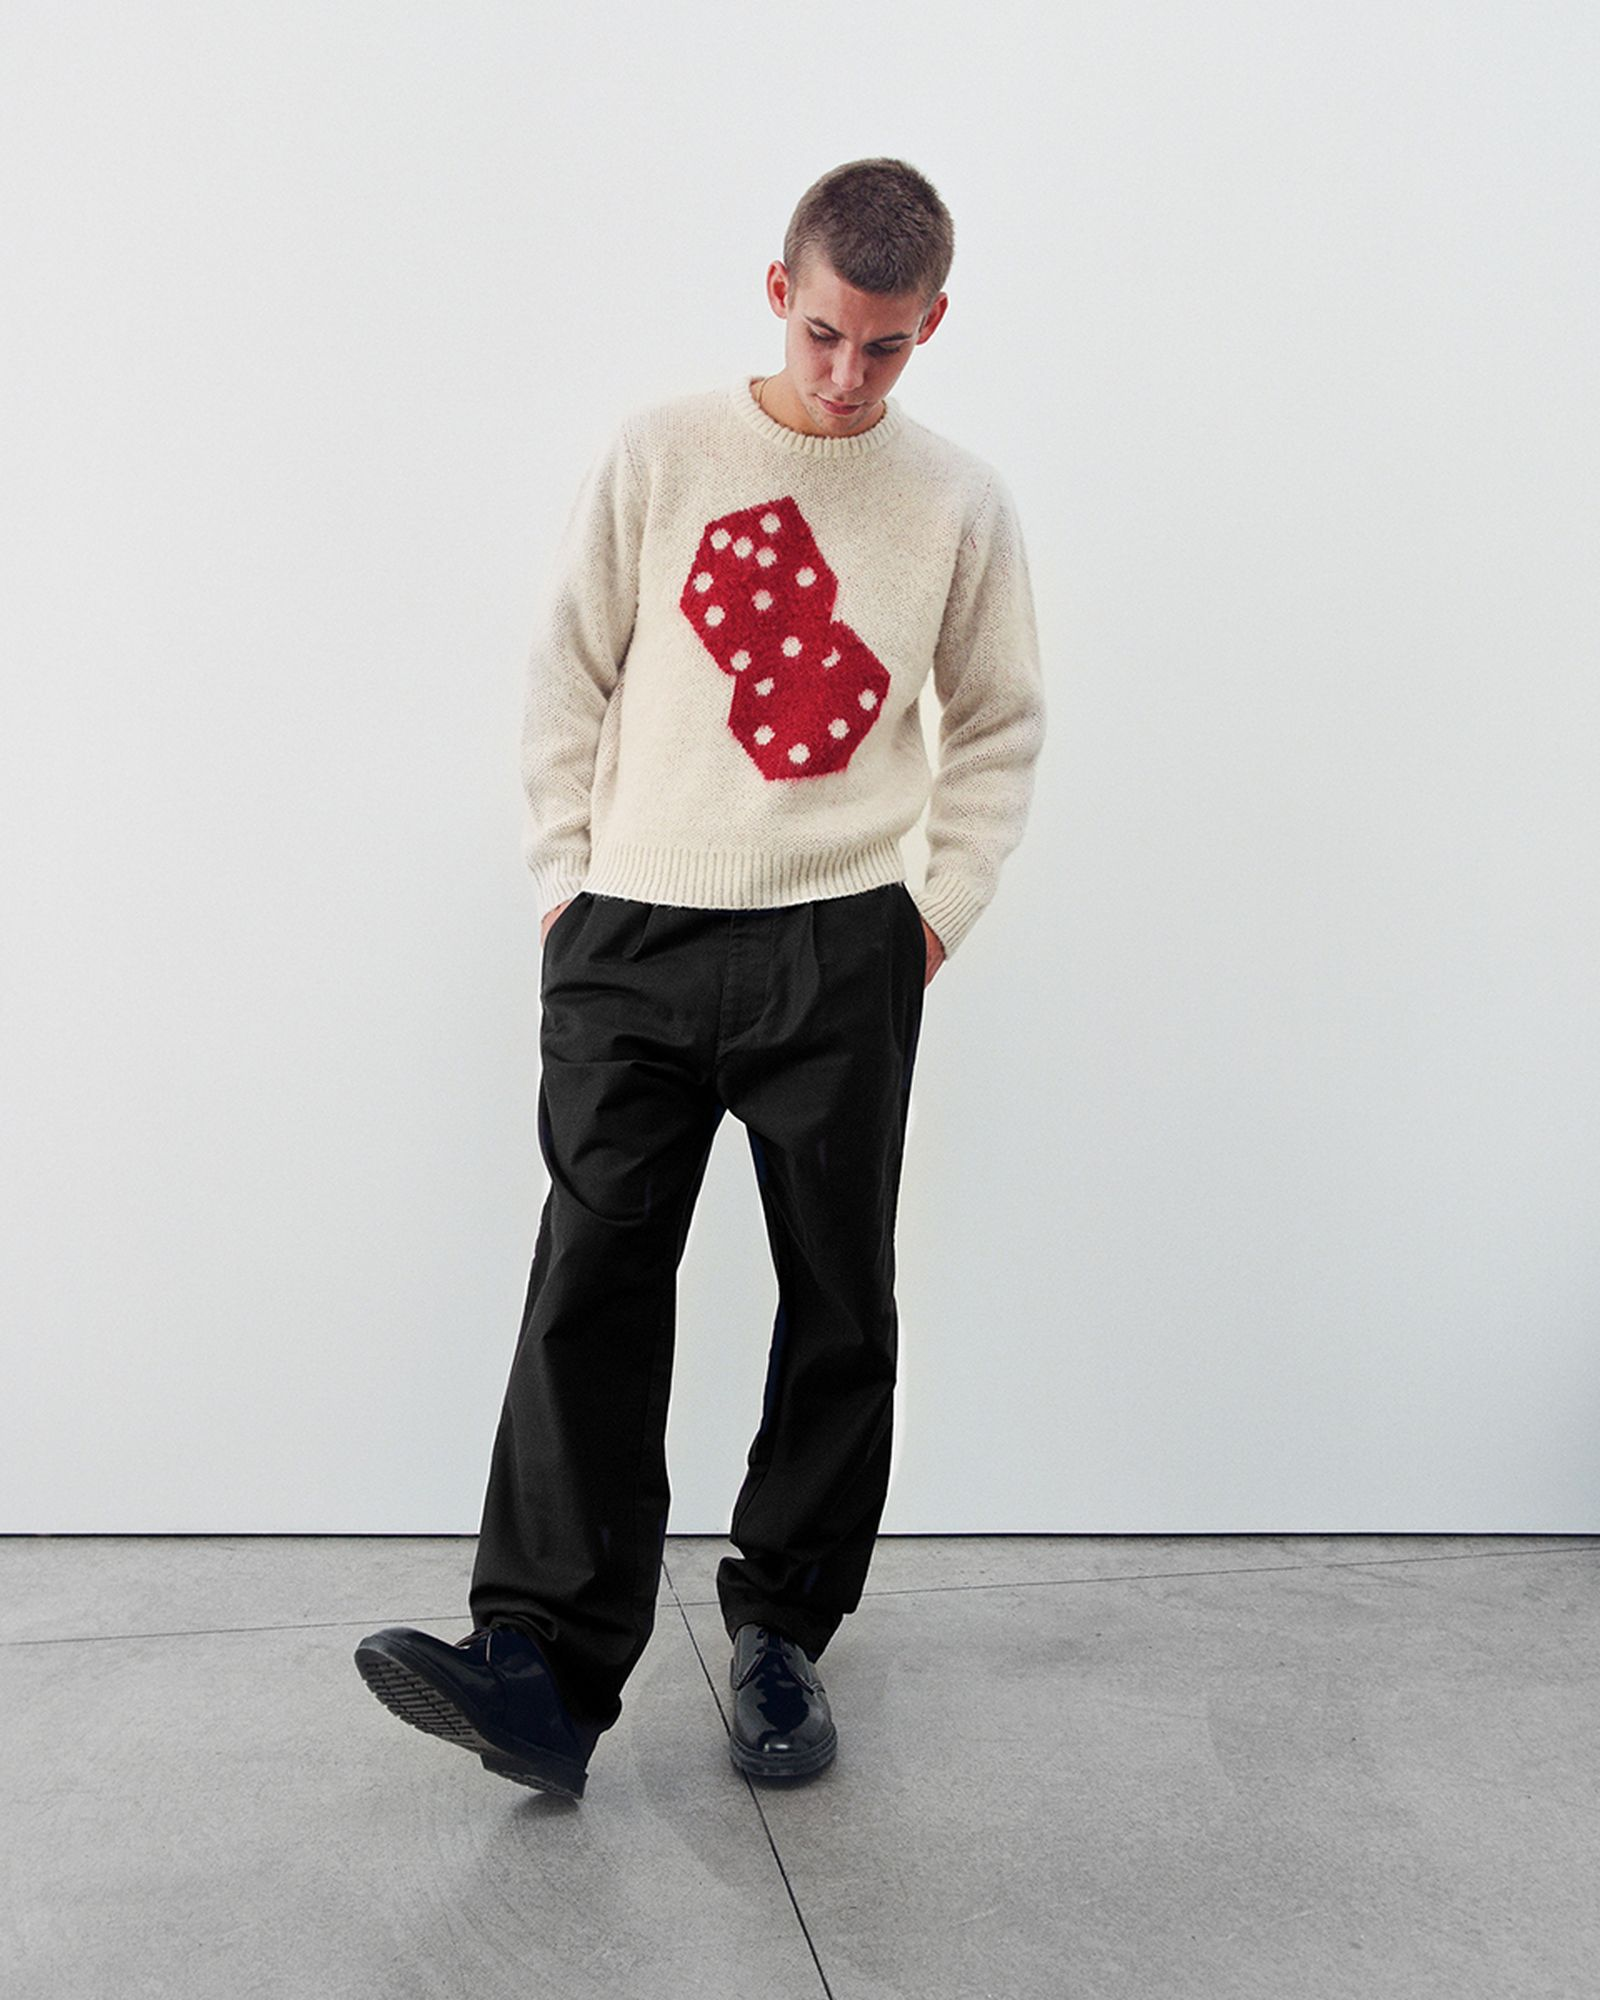 Stussy fall 2021 collection lookbook (8)